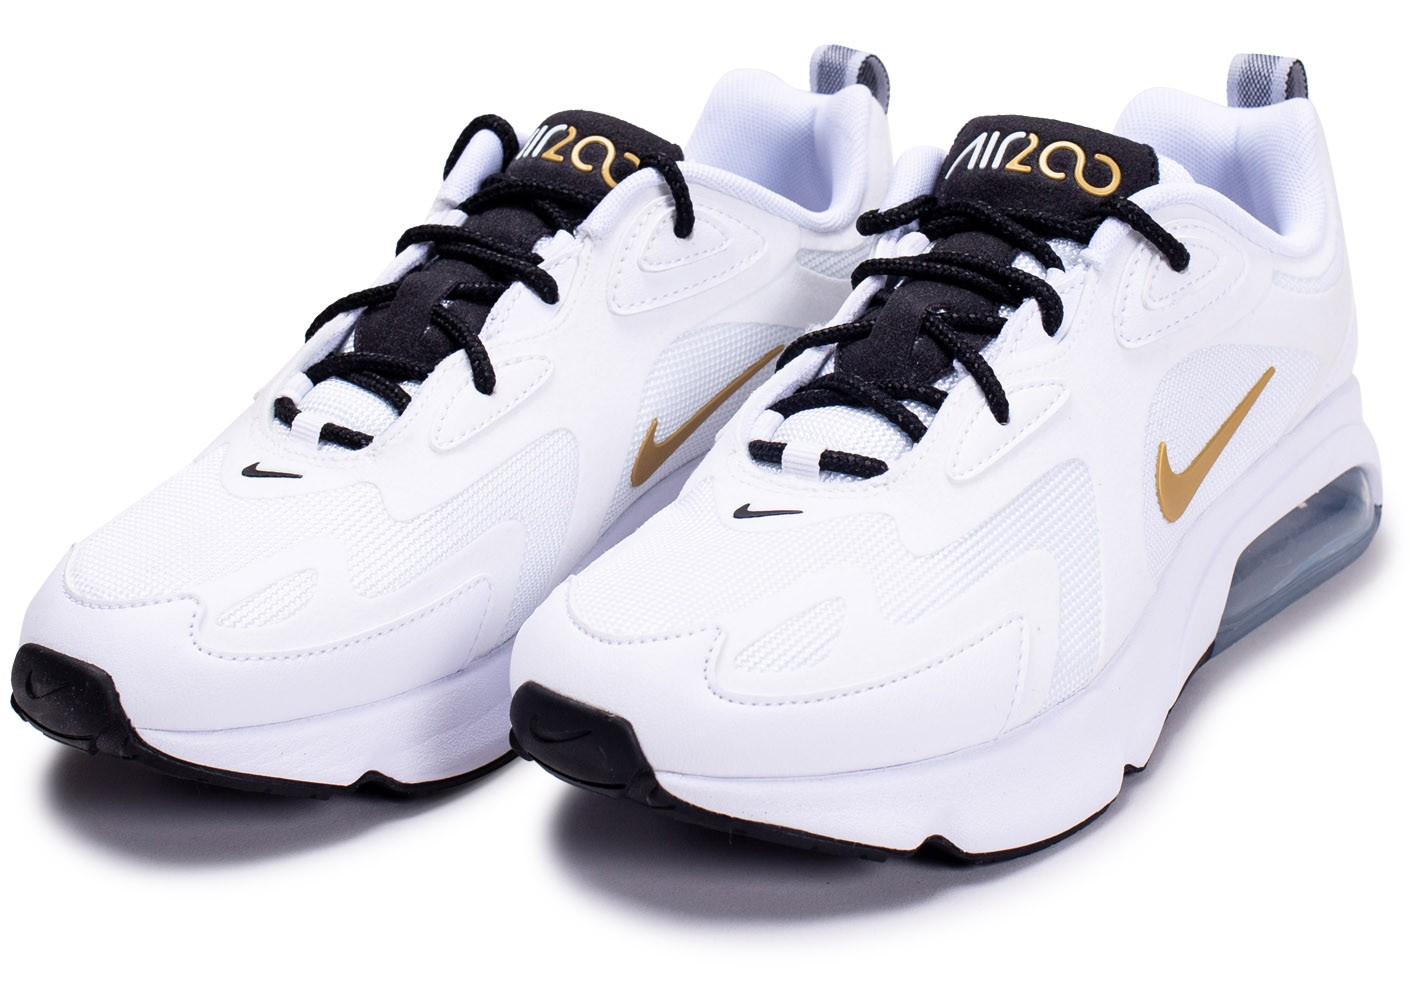 Nike Air Max 200 blanc or femme - Chaussures Baskets femme ...